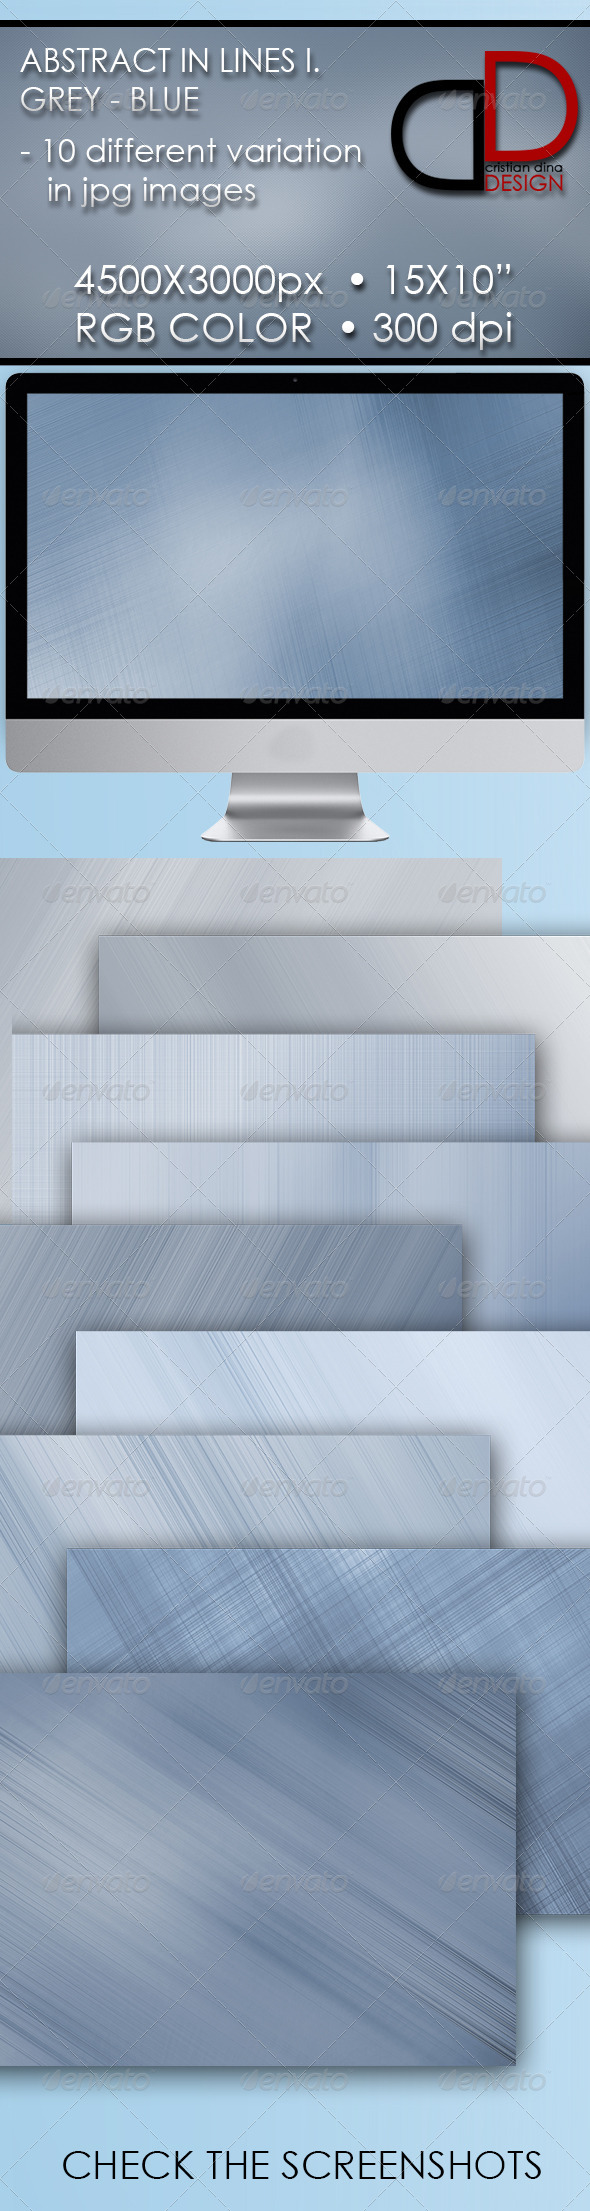 GraphicRiver Abstract In Lines I Grey & Blue Pack 6432966